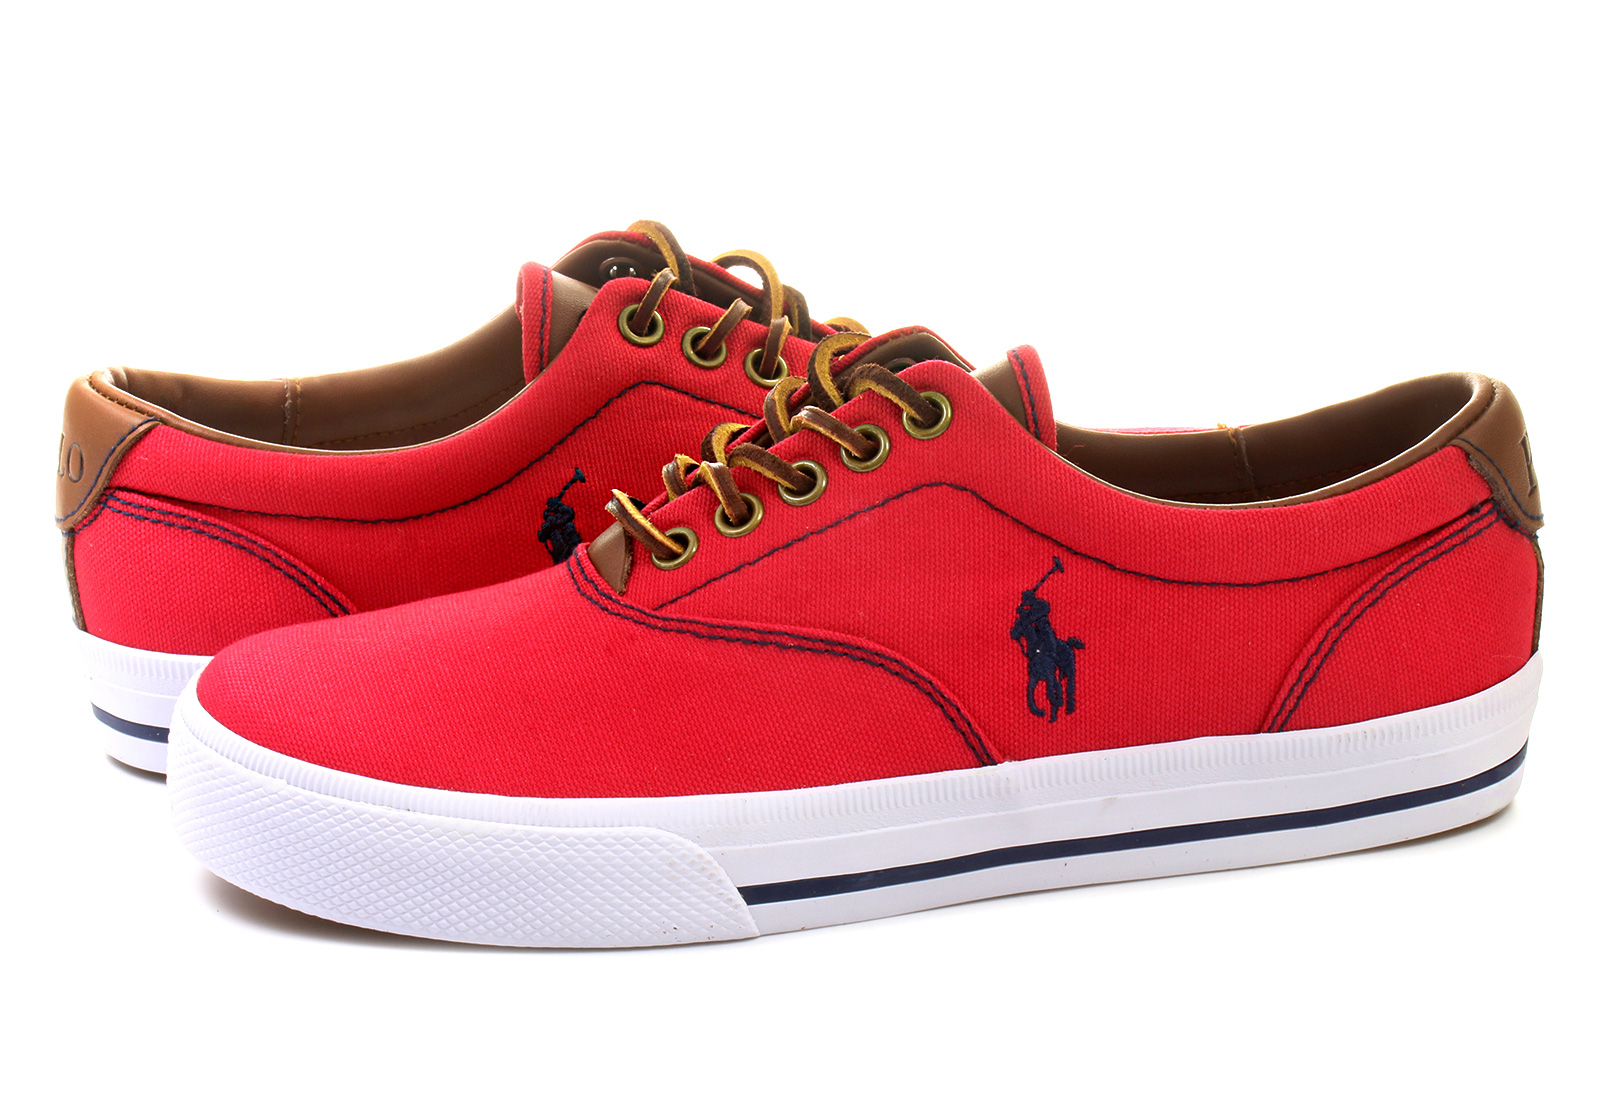 polo ralph lauren sneakers vaughn 222 c a6012 online shop for sneakers shoes and boots. Black Bedroom Furniture Sets. Home Design Ideas